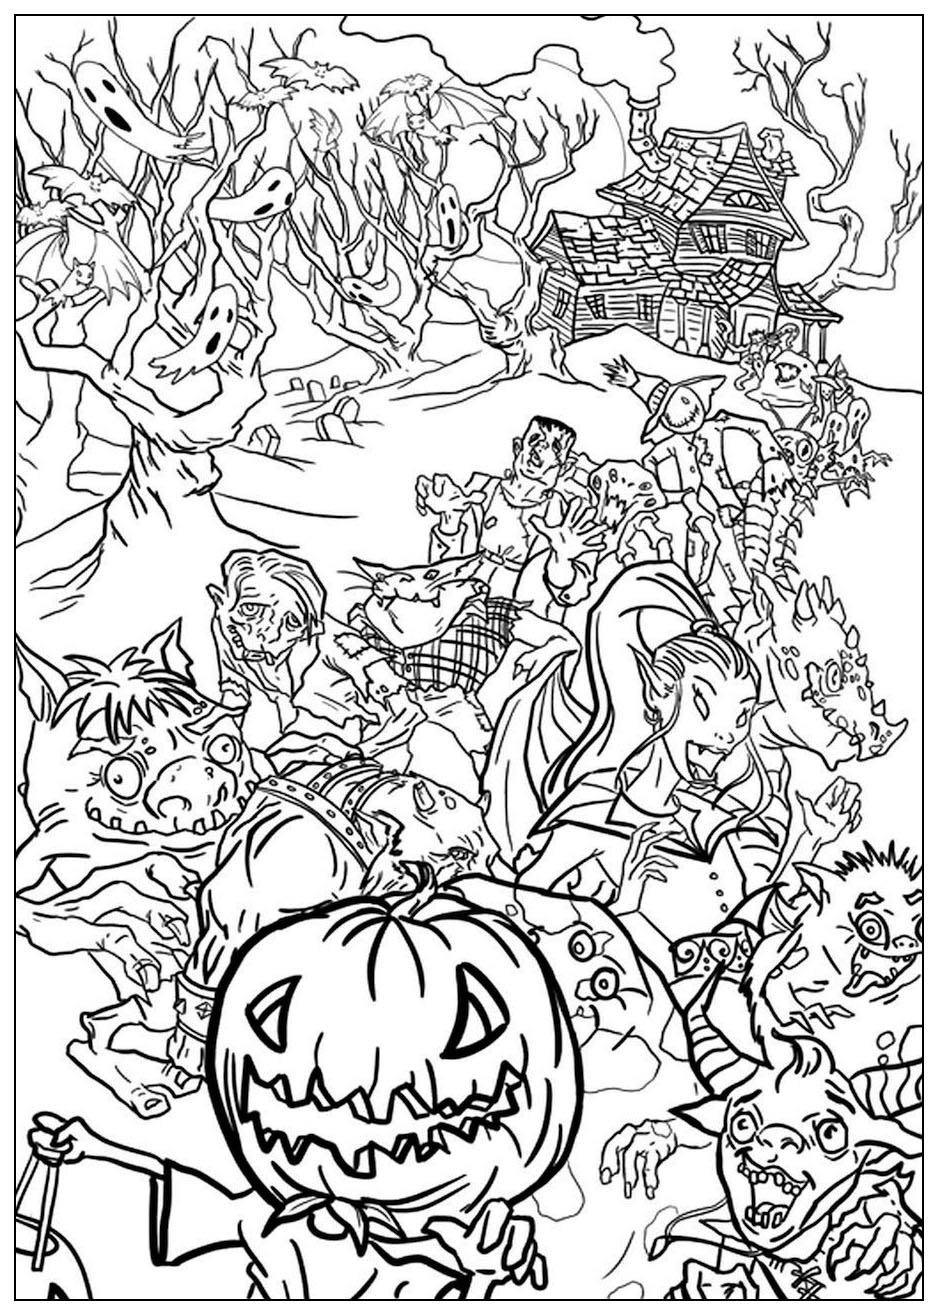 Coloring adult halloween monsters